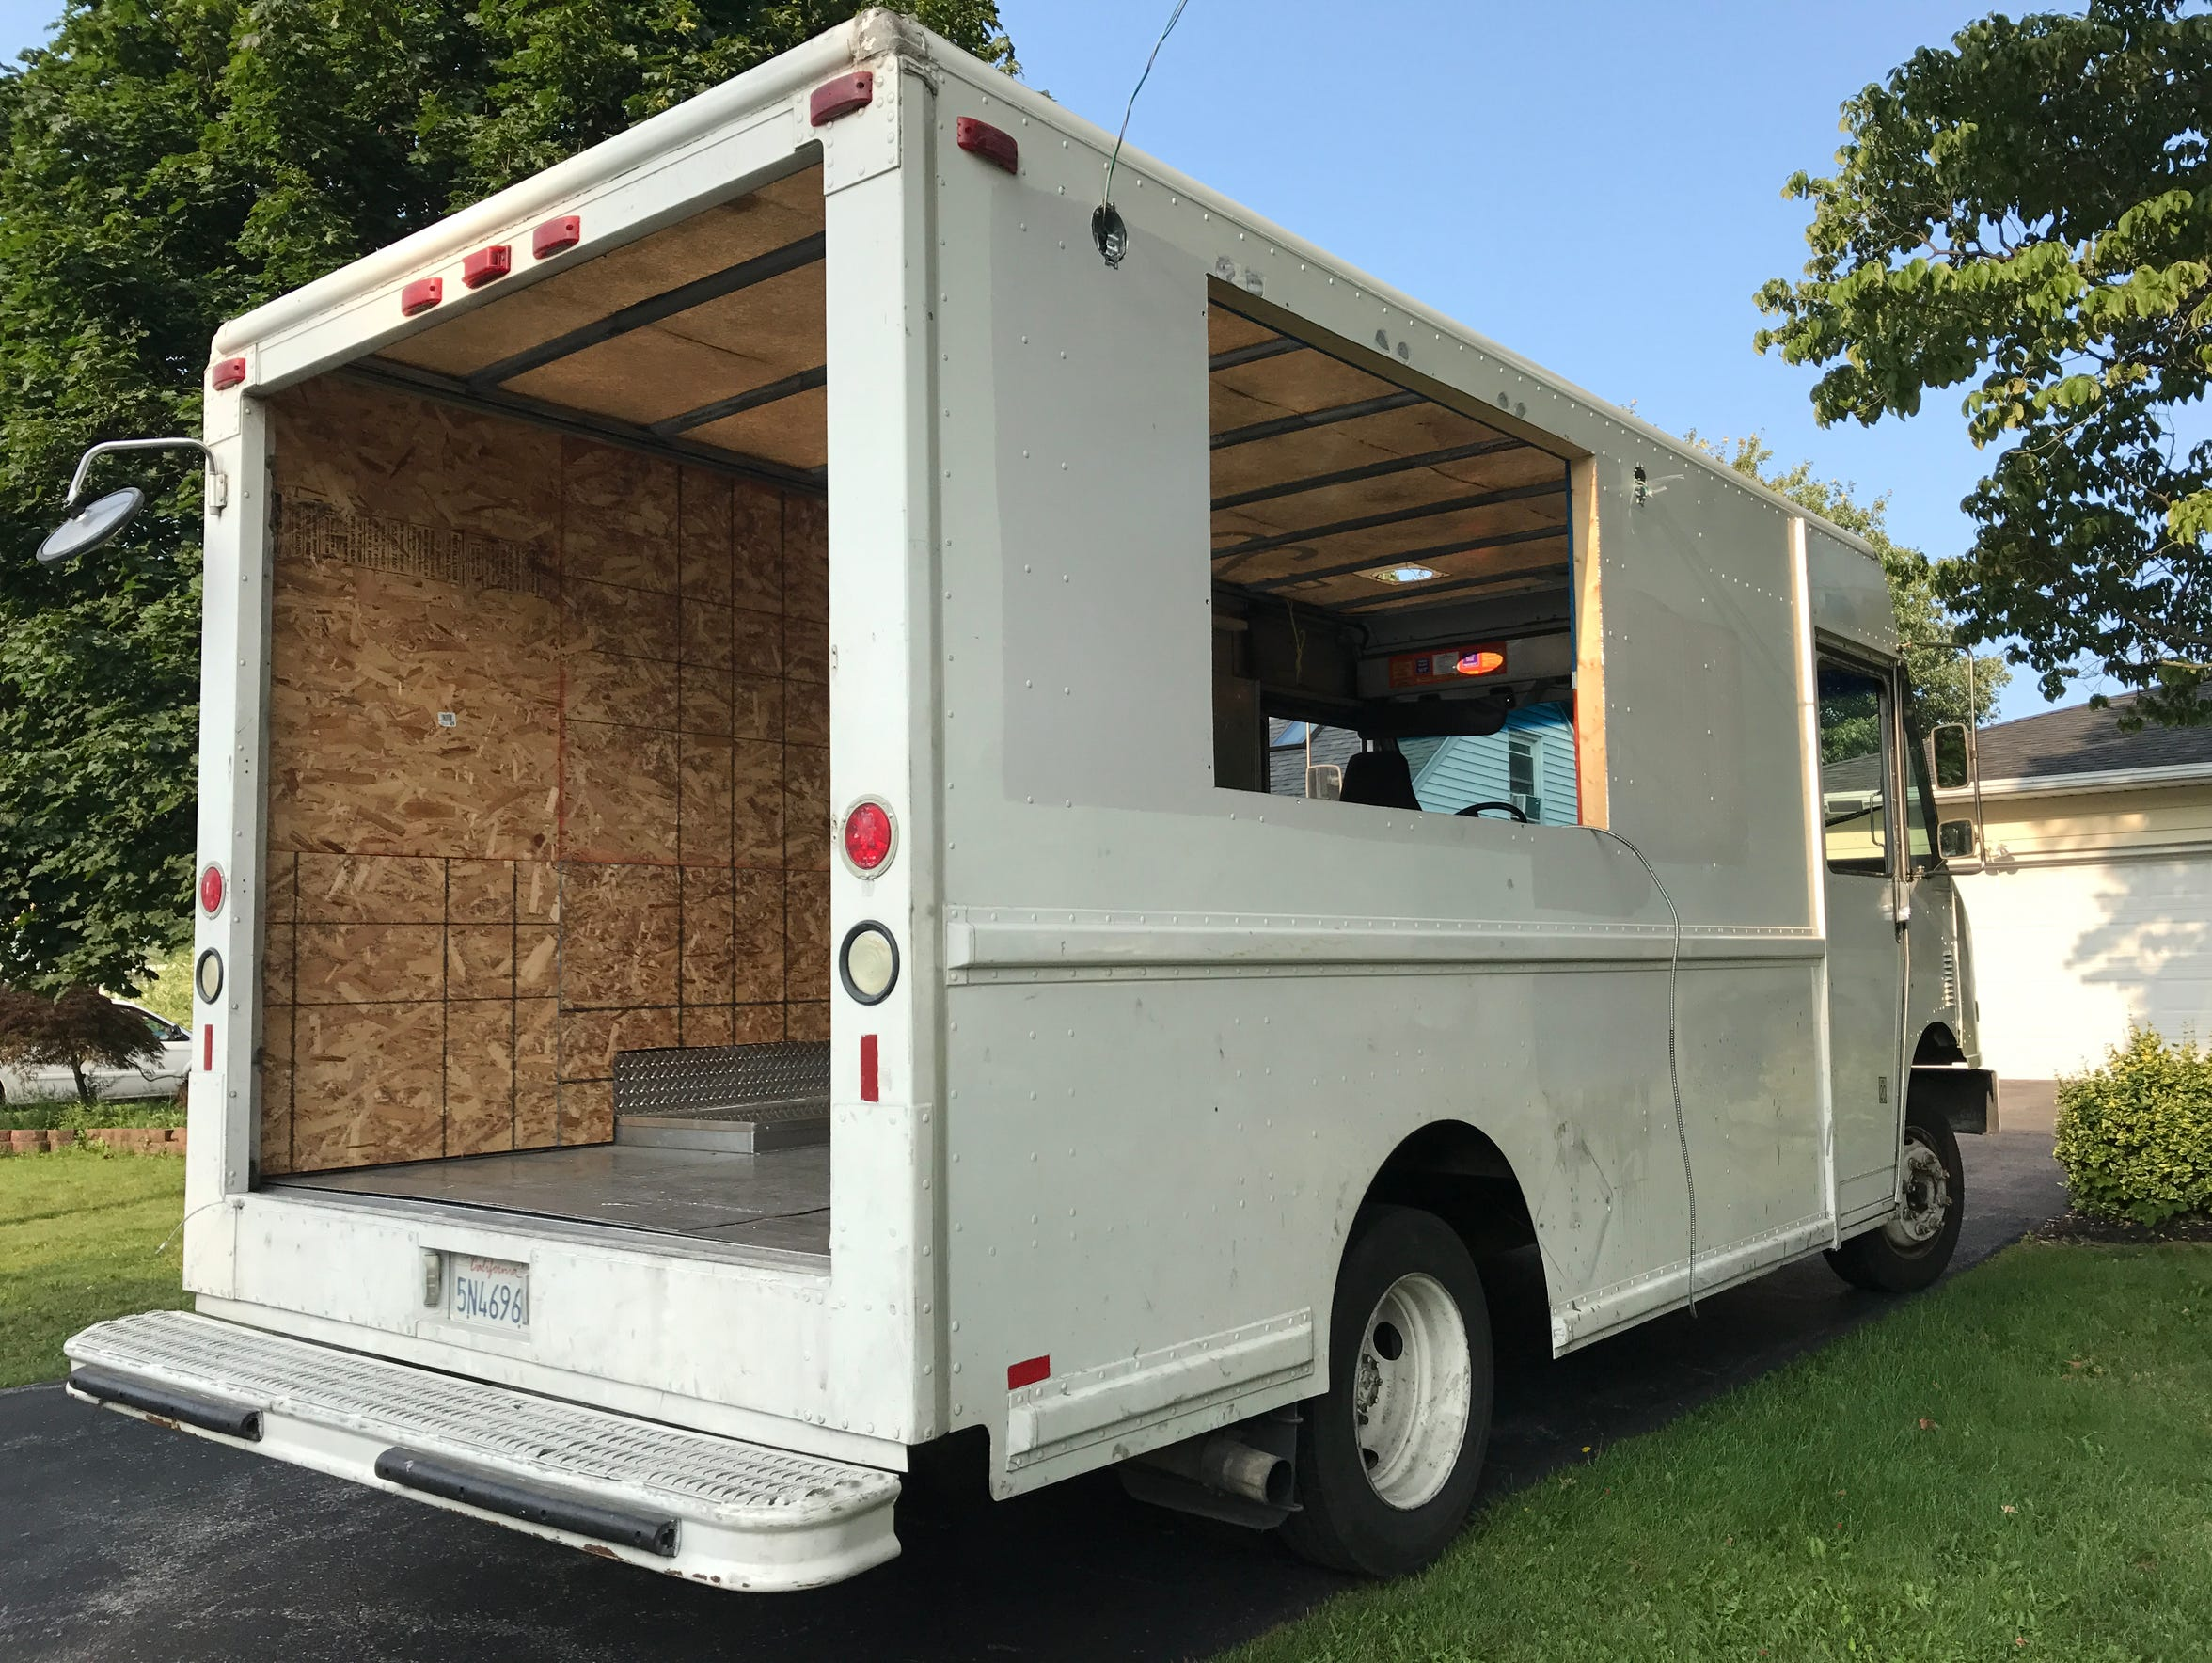 Food Truck Builder M Design Burns Small Business Owners Nationwide